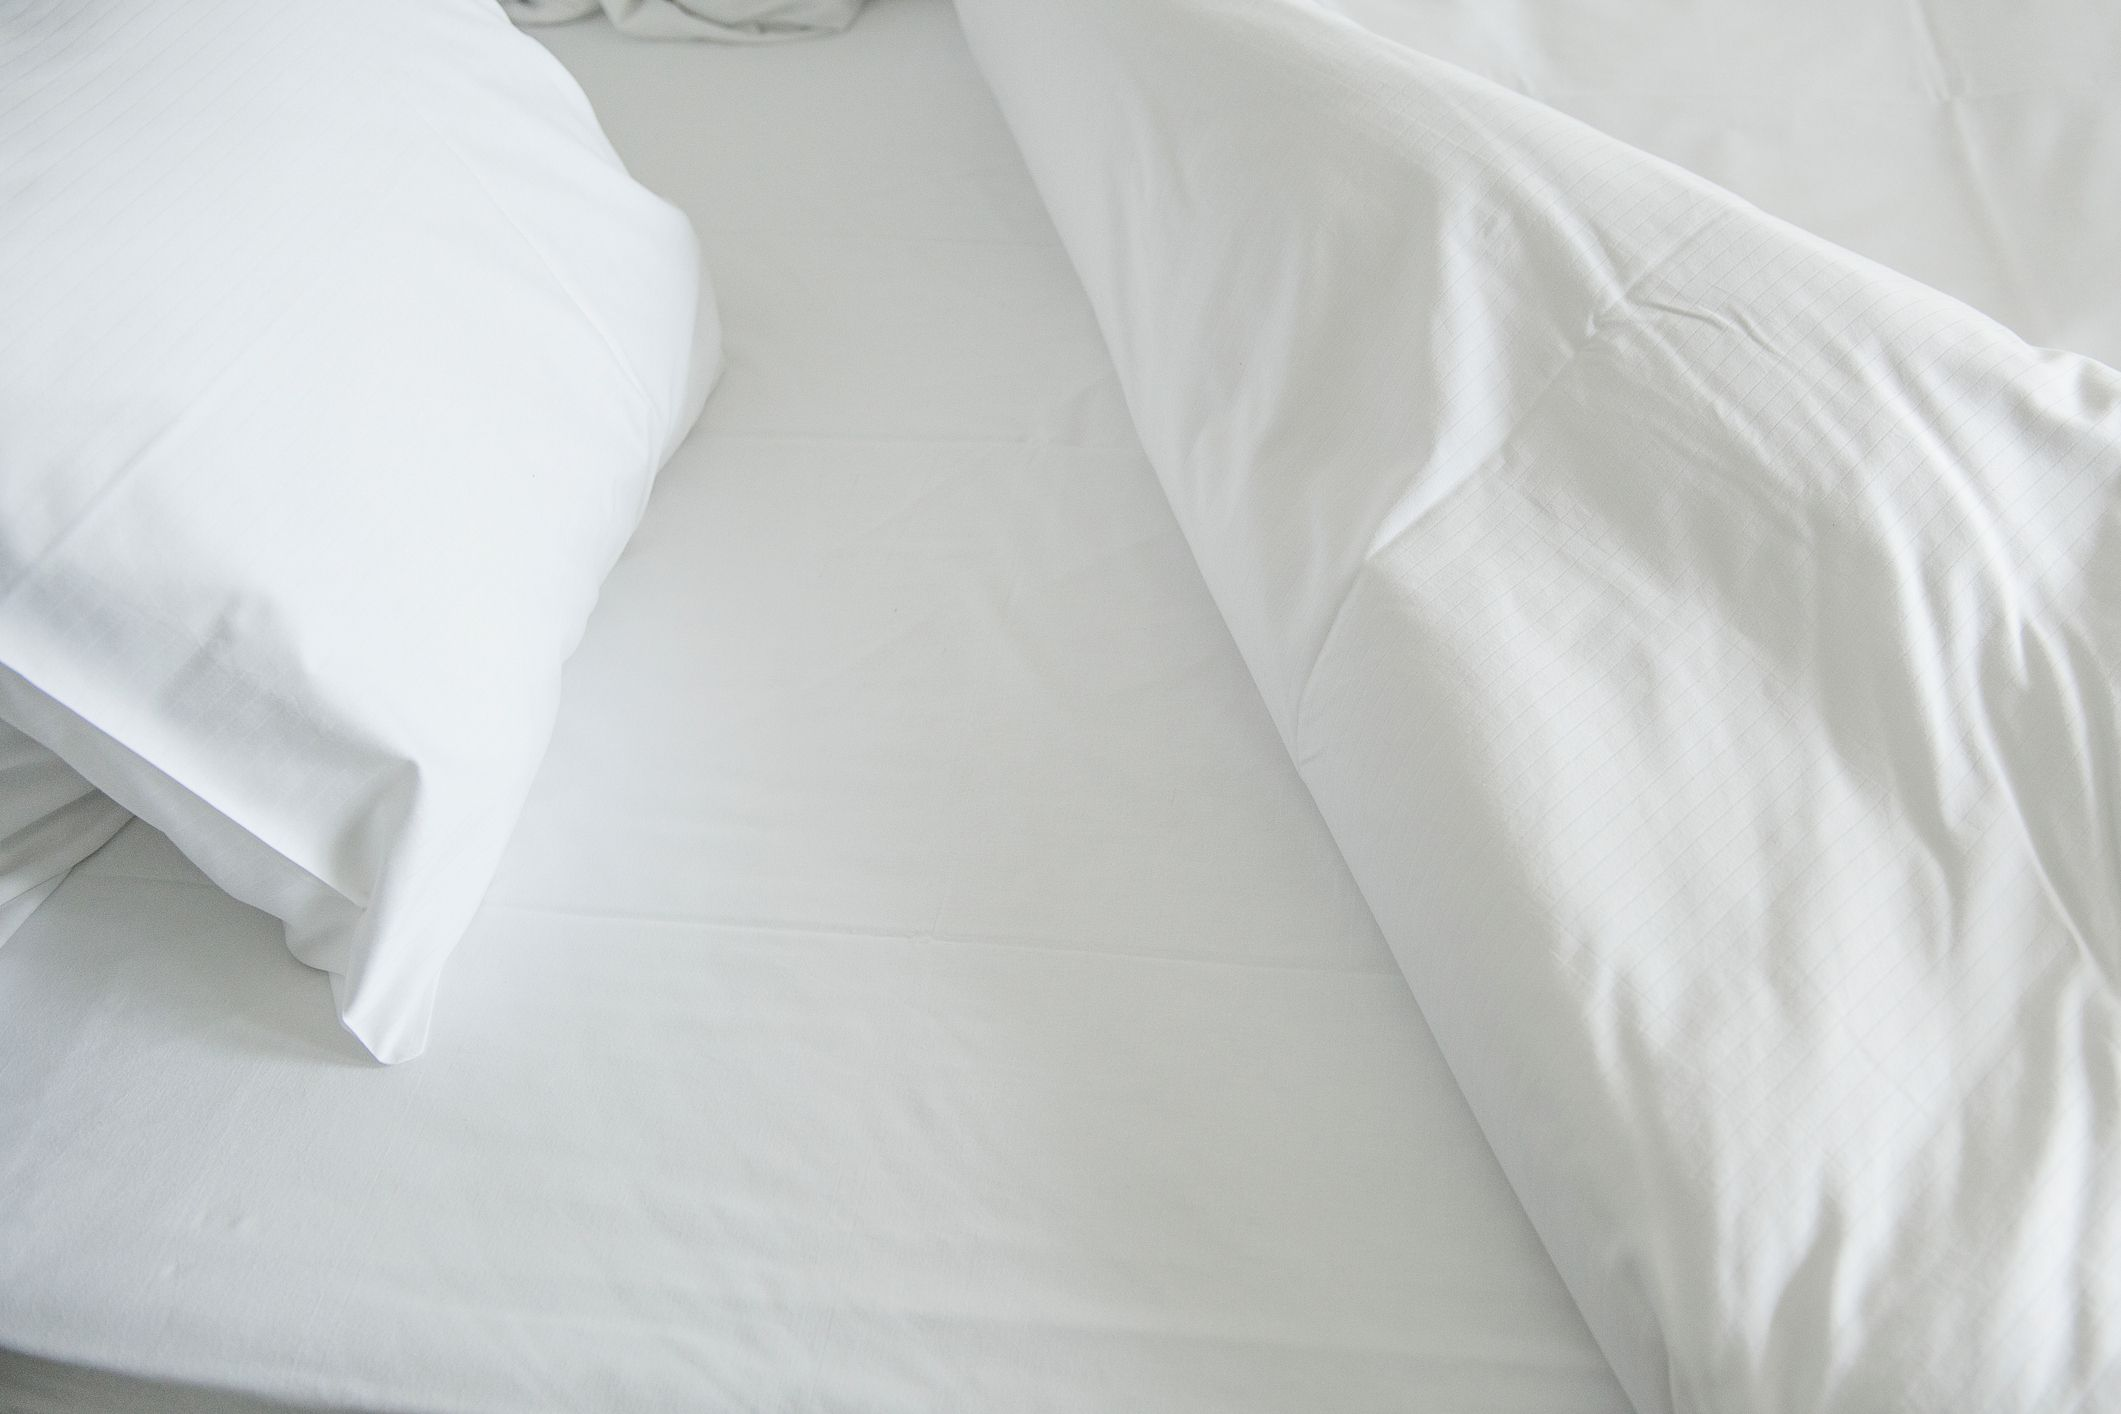 a50a5d594b6d The 9 Best Percale Sheets of 2019